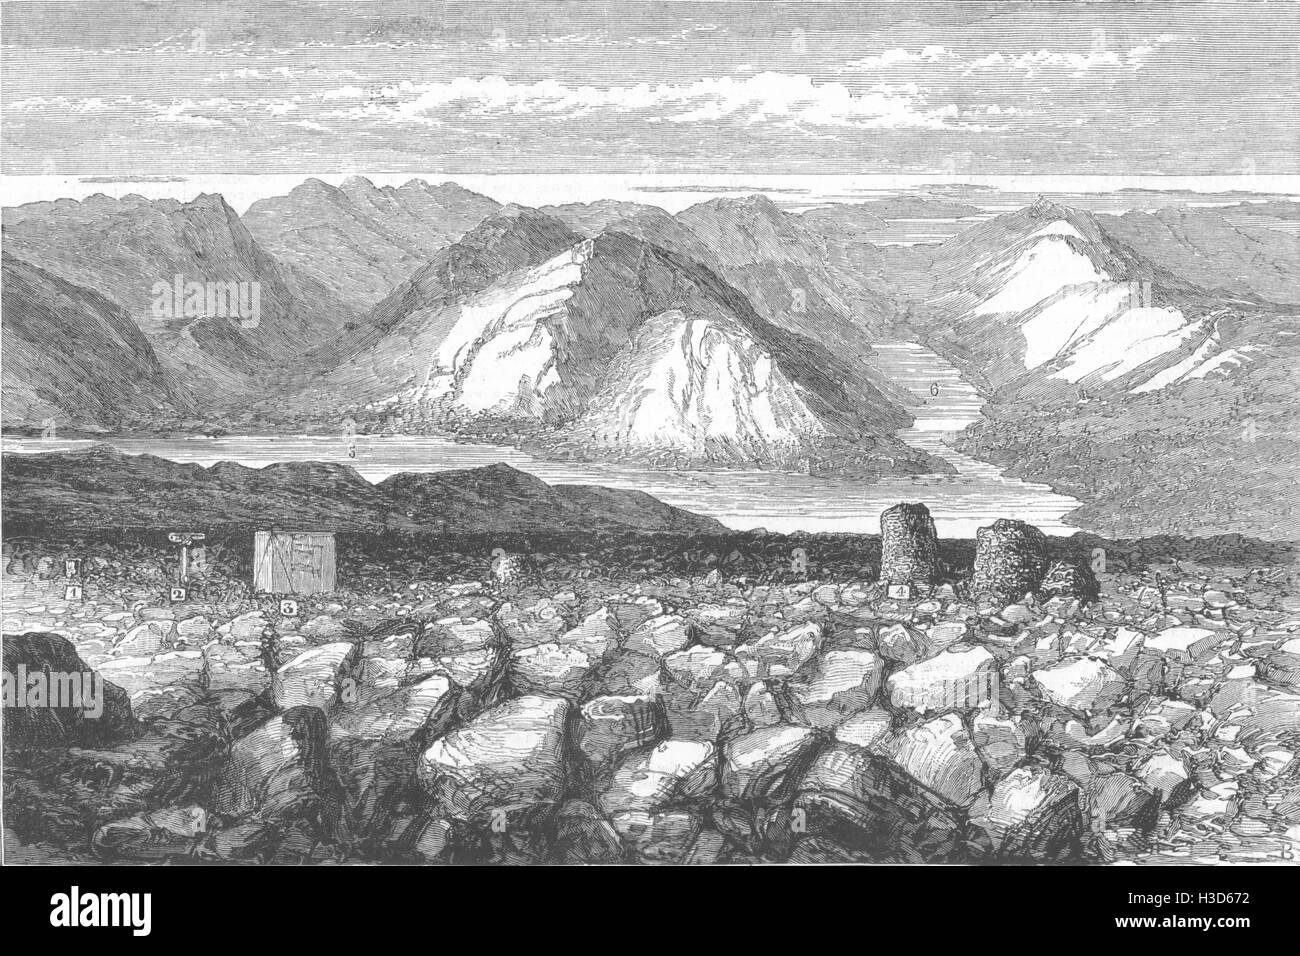 BEN NEVIS Meteorological observatory Summit Lochs Linnhe Eil 1881. The Graphic - Stock Image